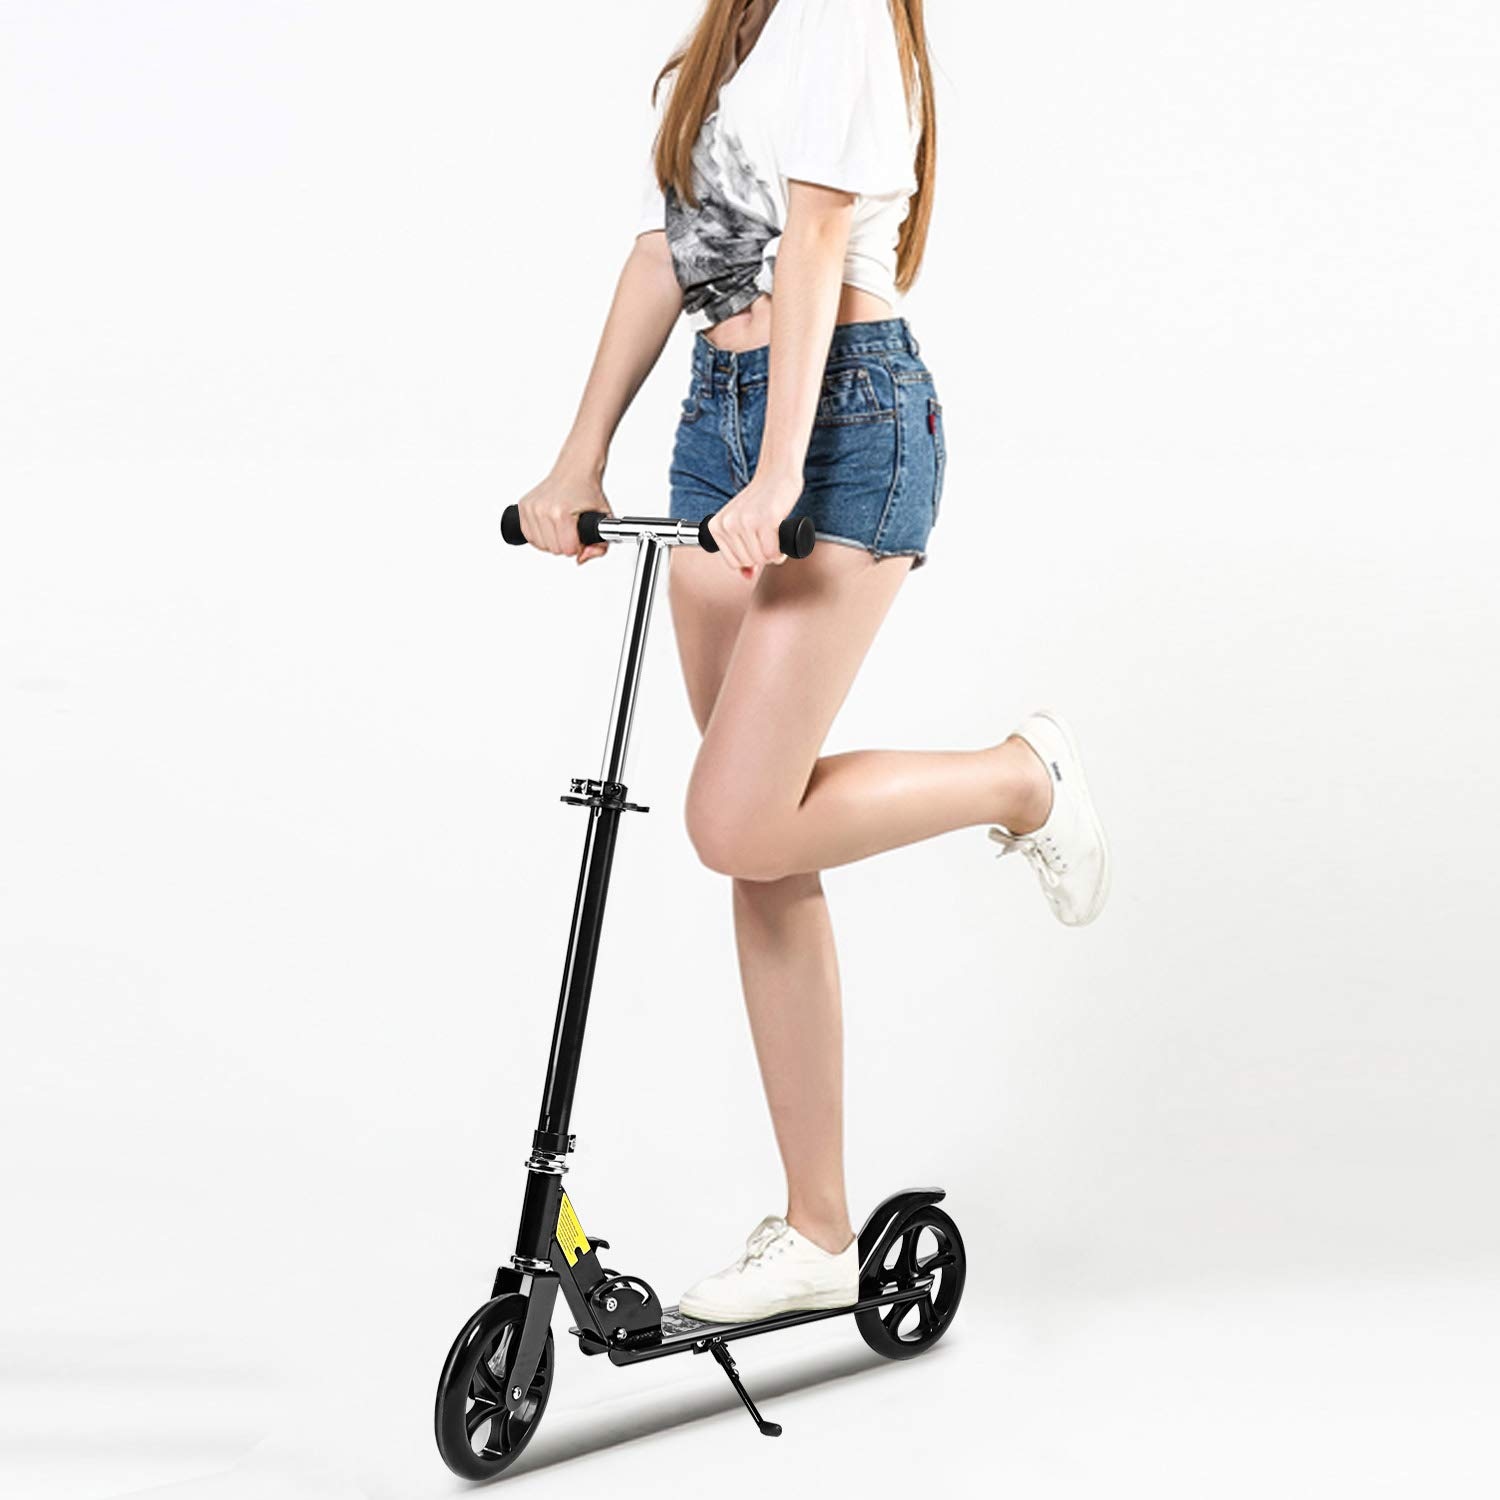 Hikole Scooter for Adult Youth Kids - Foldable Adjustable Portable Ultra-Lightweight   Teen Kick Scooter with Shoulder Strap, Birthday Gifts for Kids 8 Years Old and Up   Support 220 lbs by Hikole (Image #8)